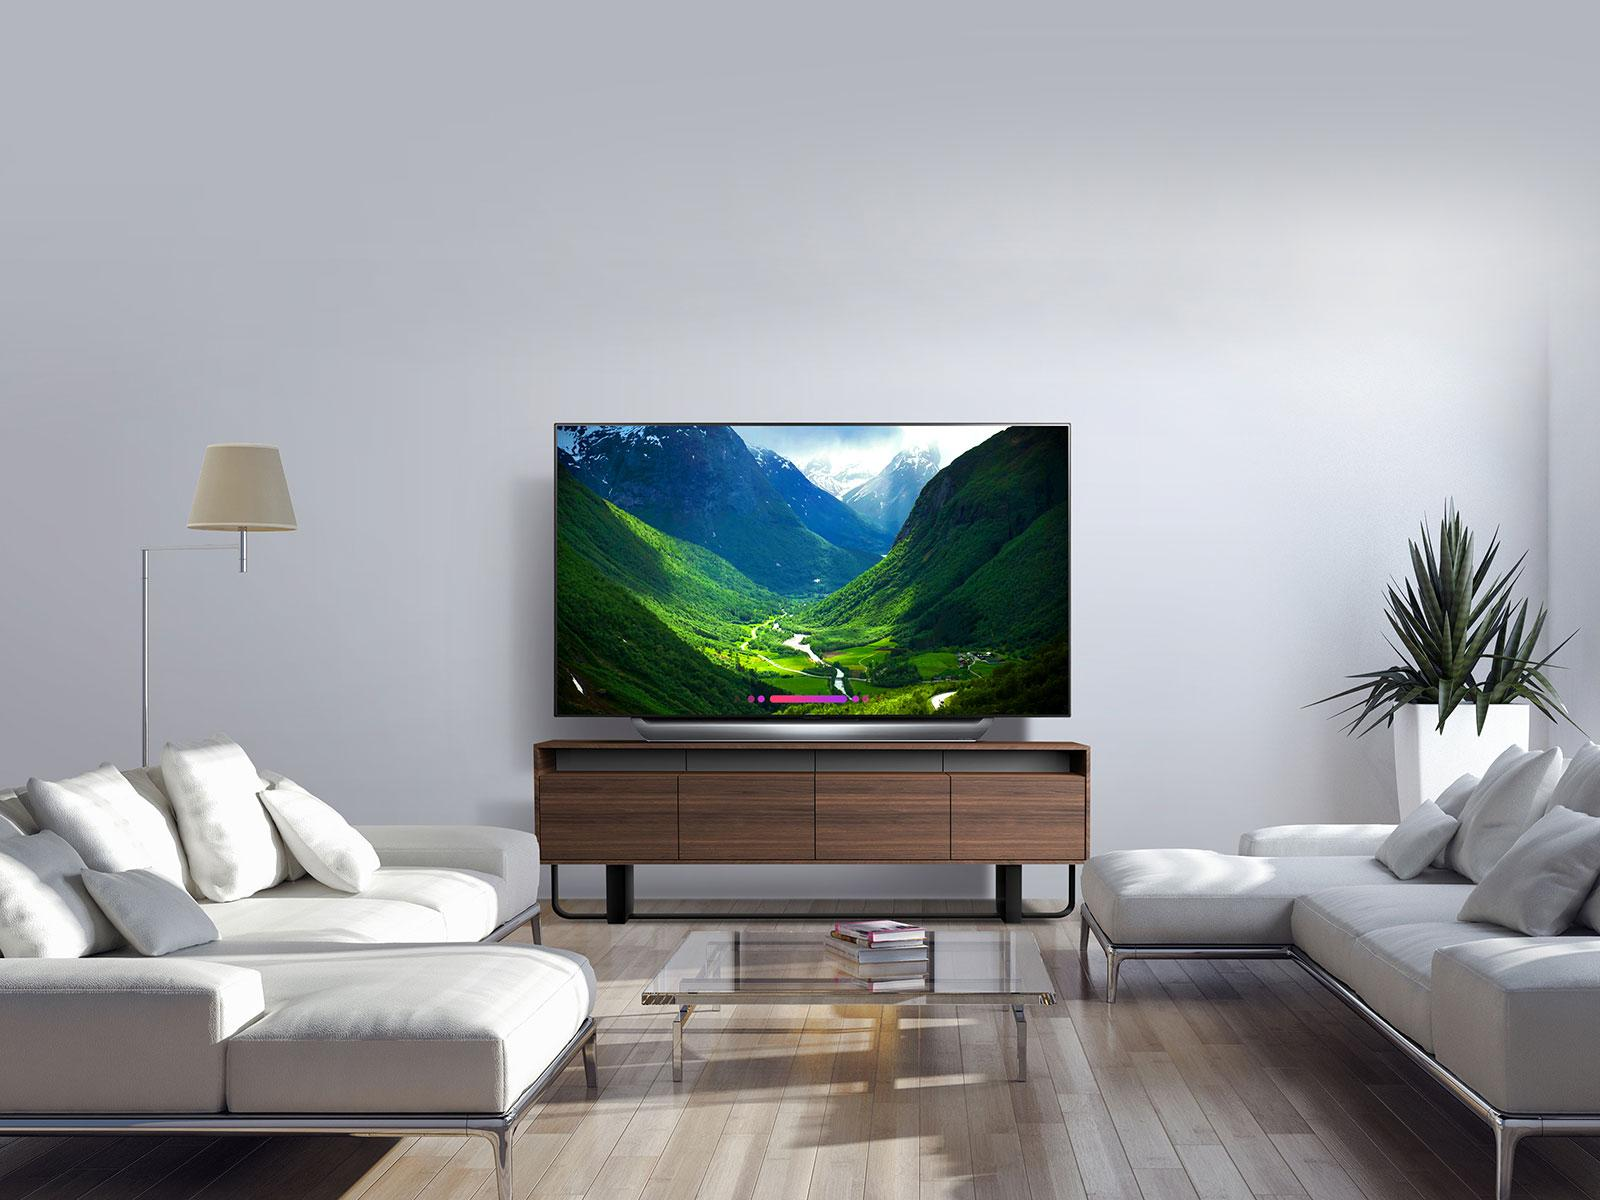 lg oled65c8pua save up to on the lg oled65c8pua today lg usa. Black Bedroom Furniture Sets. Home Design Ideas